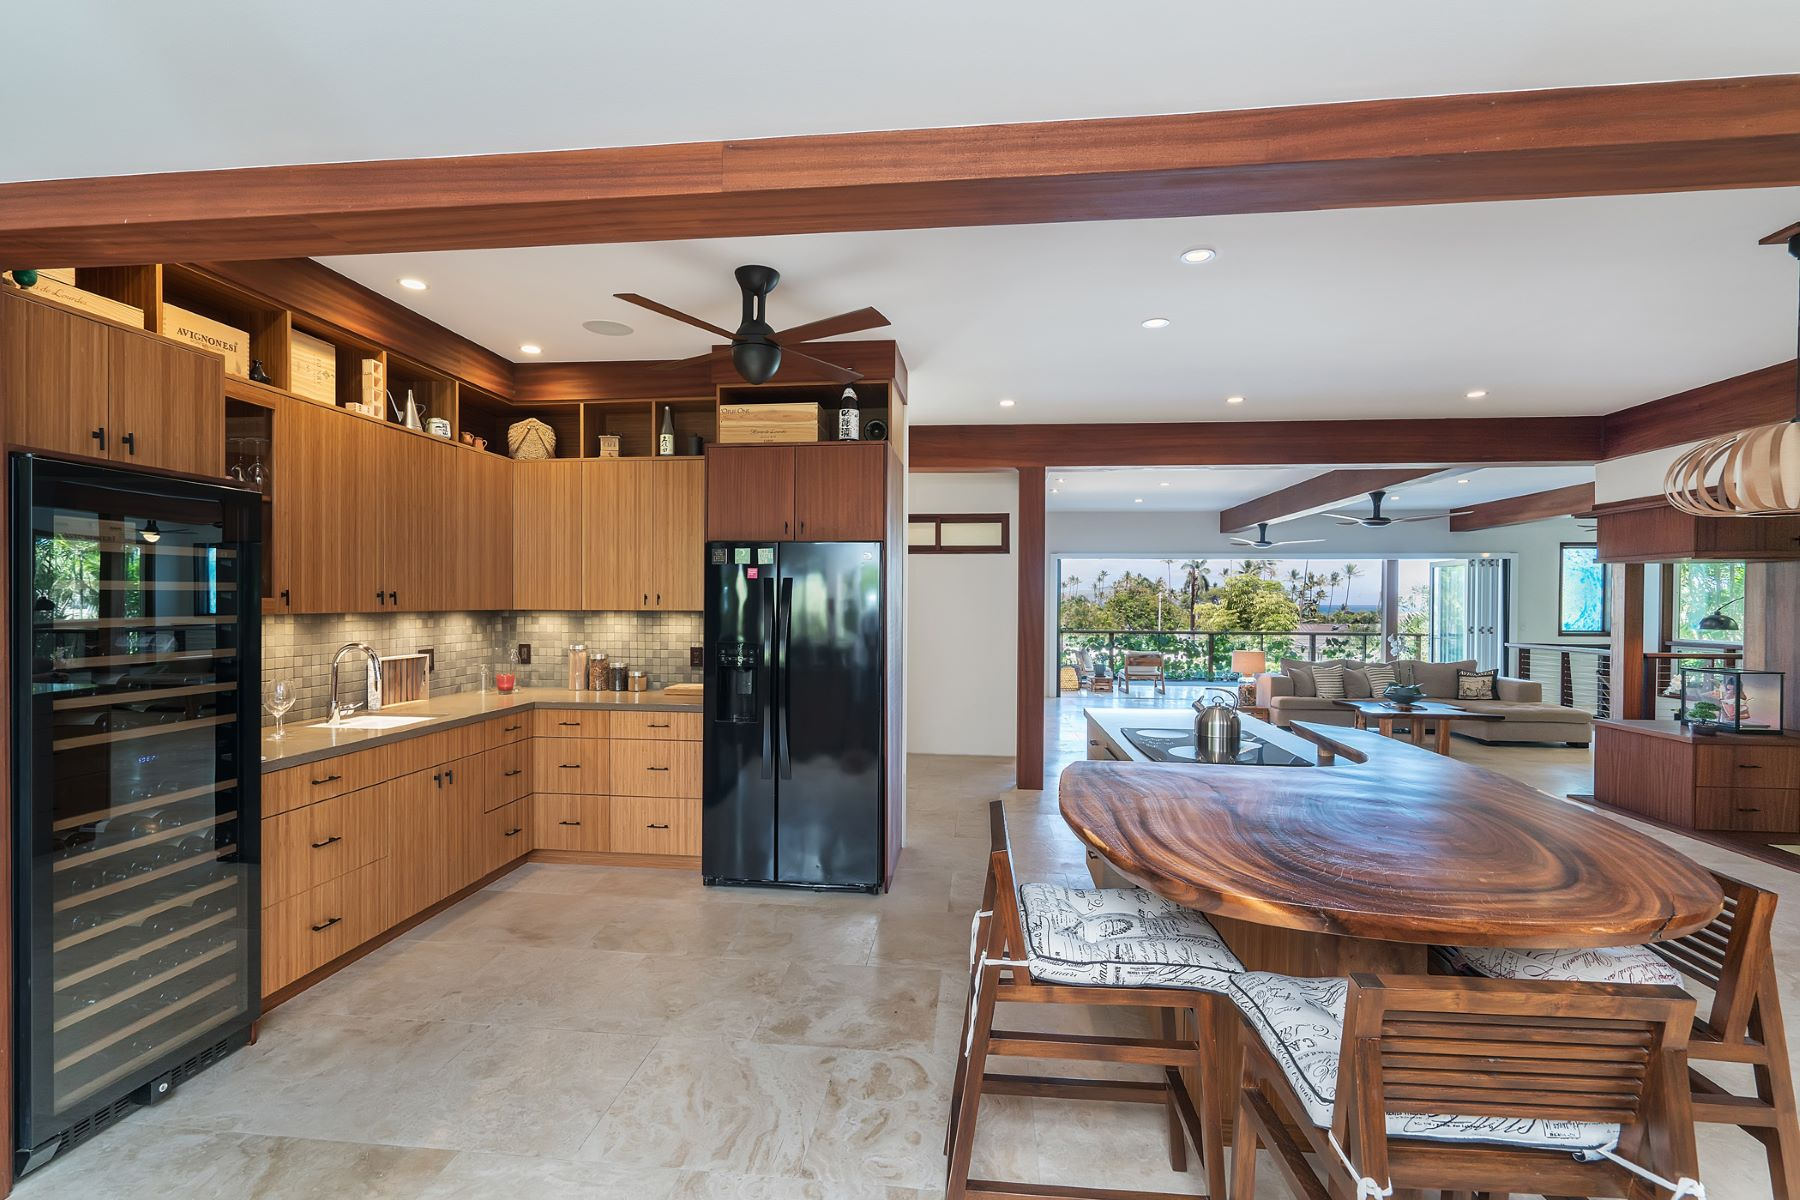 Additional photo for property listing at An Island Oasis 4316 Aukai Avenue Honolulu, Hawaii 96816 United States